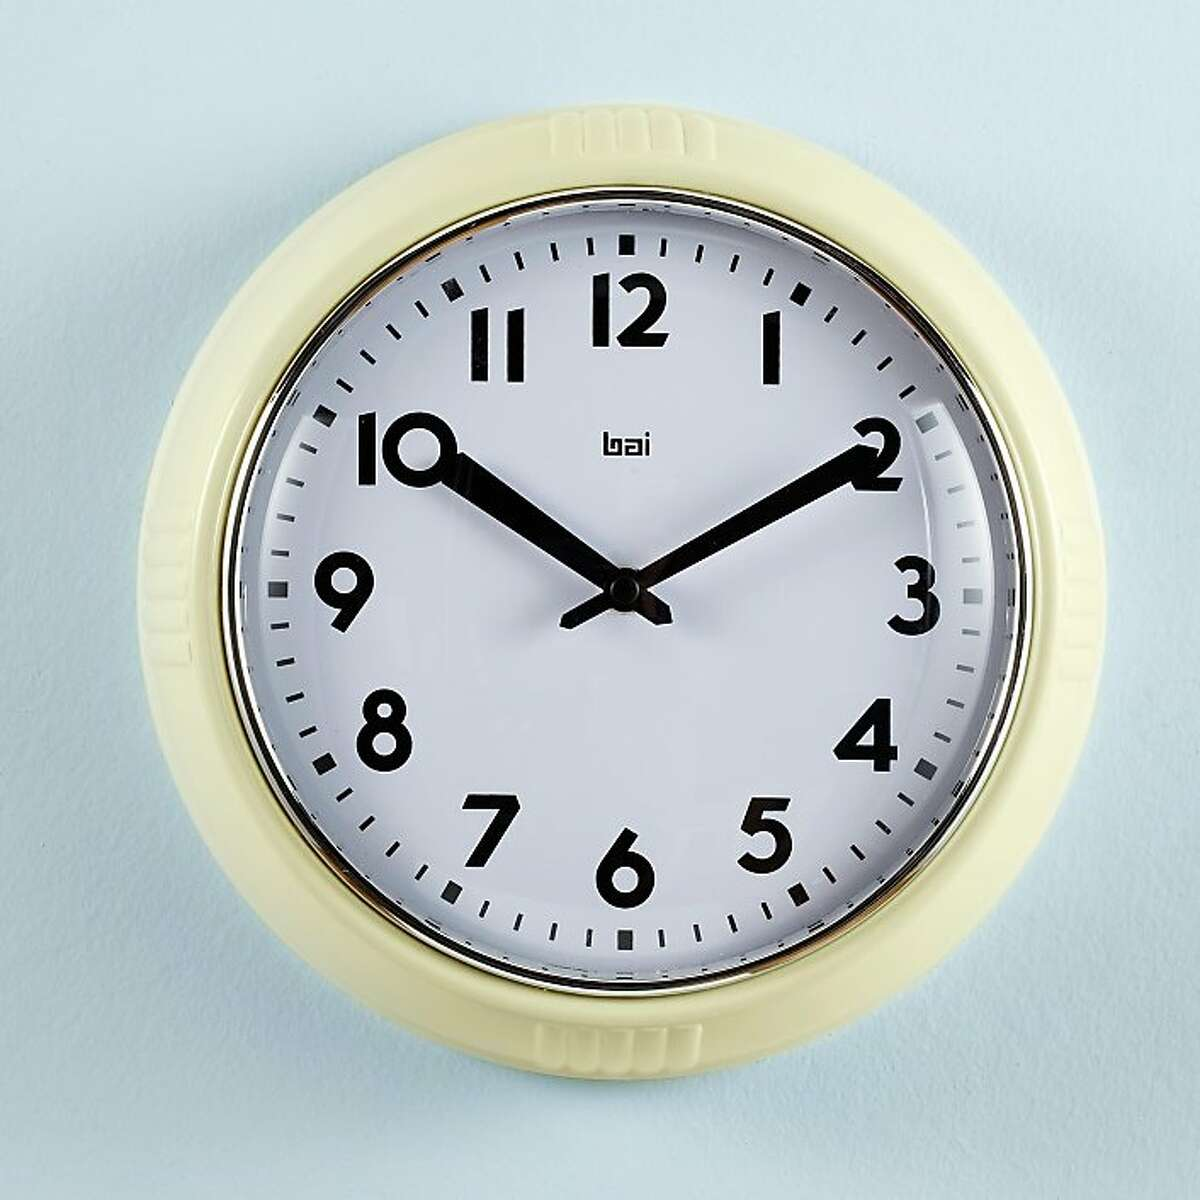 Rock Around the Schoolhouse Clock, $29, from Land of Nod.